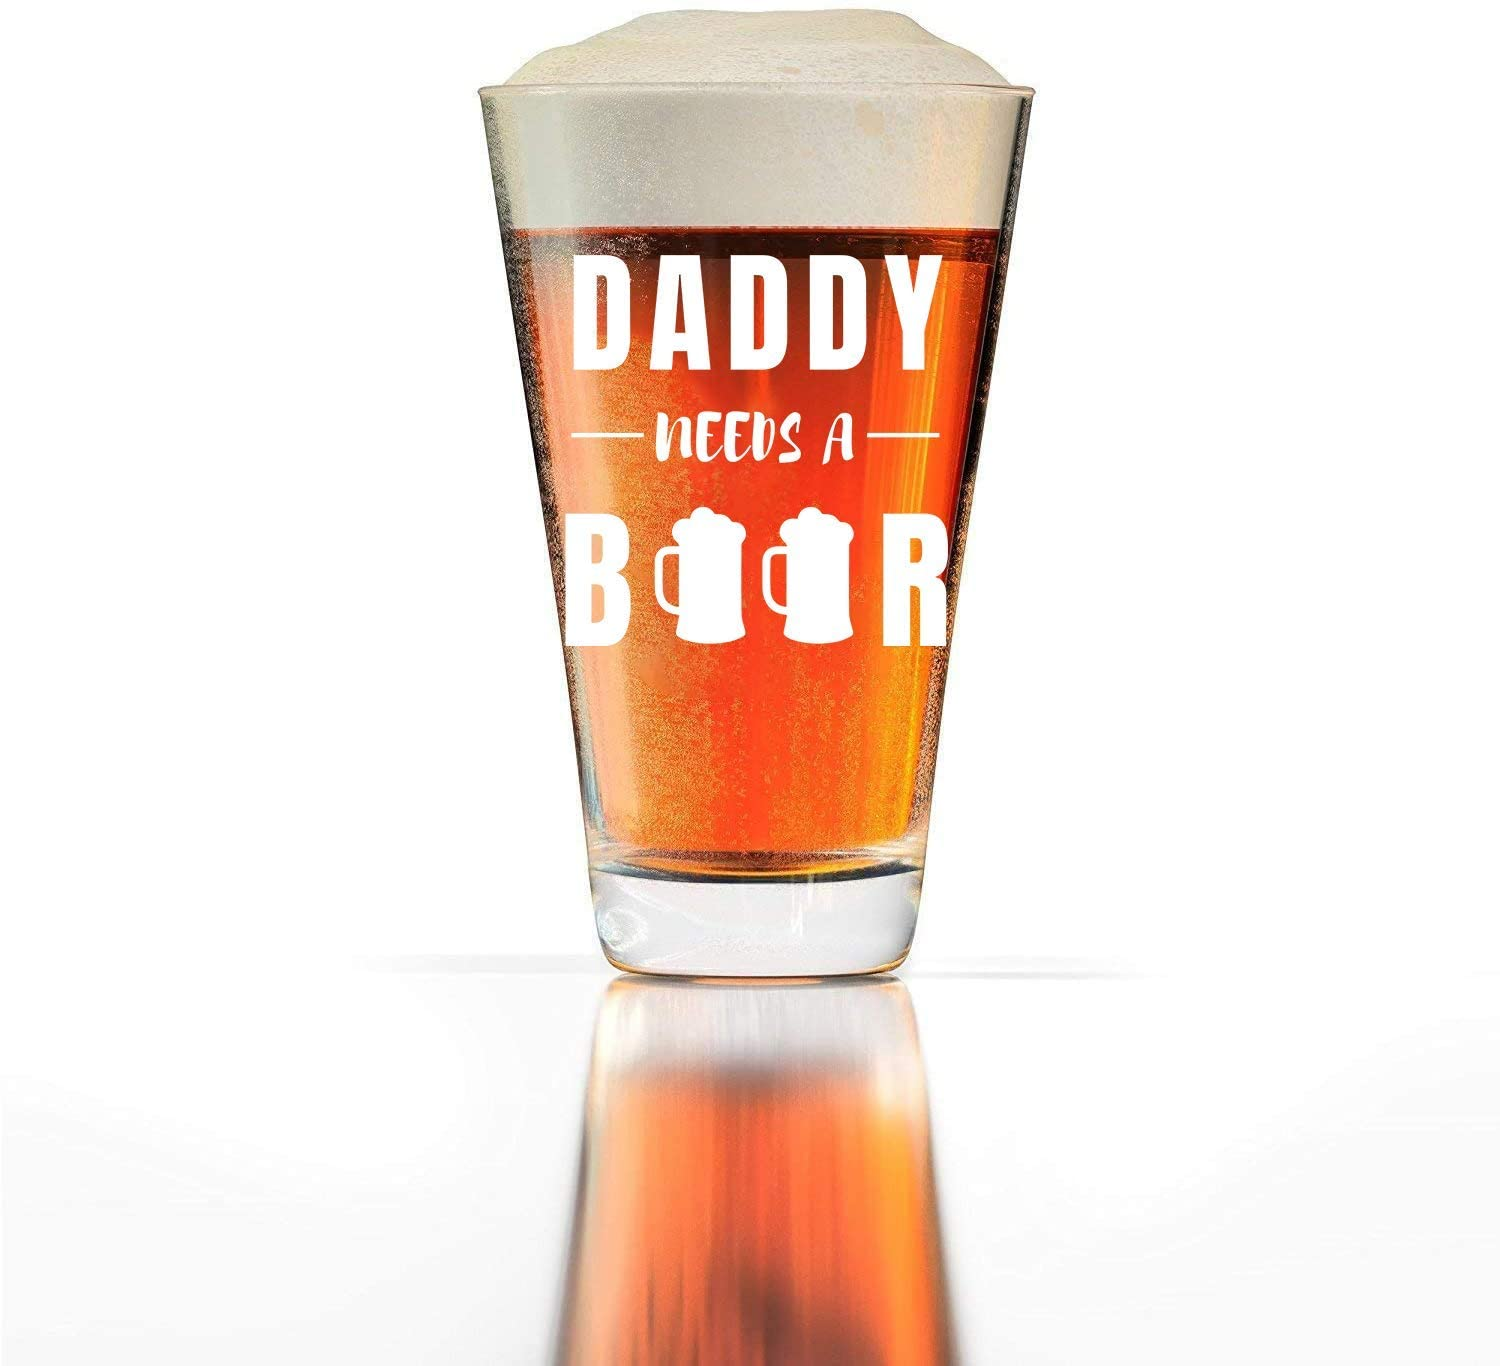 Daddy Needs a Beer Funny Beer Glass for New Father's or Father's Day 16oz Pint Beer Glass